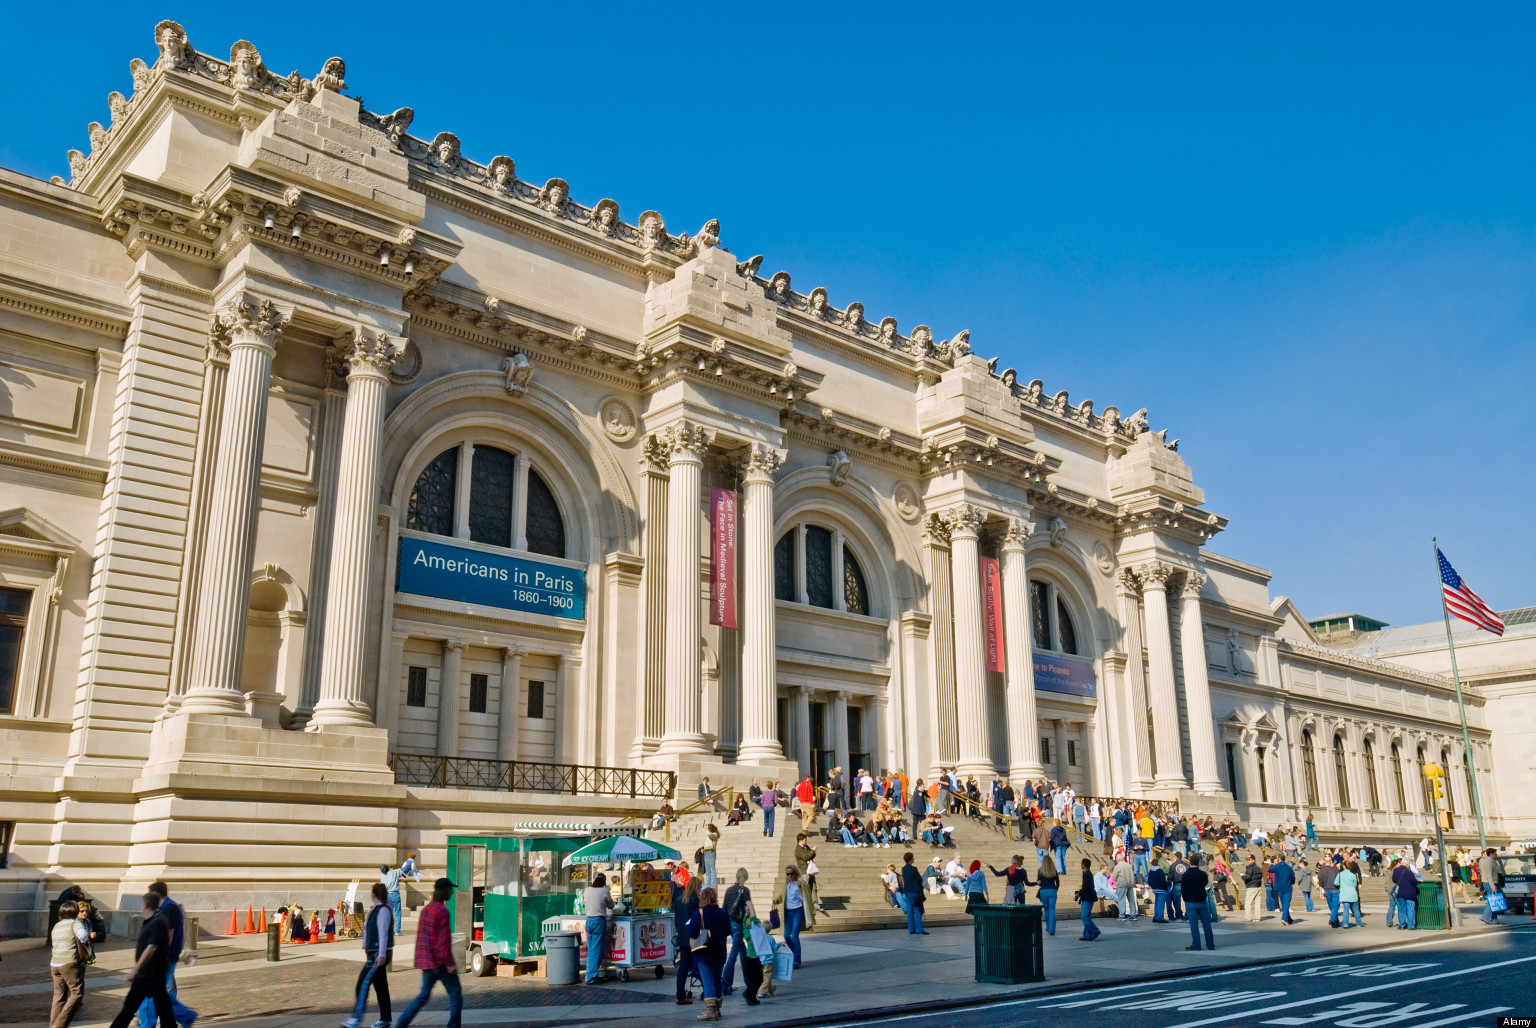 B4MKC0 New York City, The Metropolitan Museum of Art. Main entrance exterior on Fifth Avenue.. Image shot 2006. Exact date unknown.